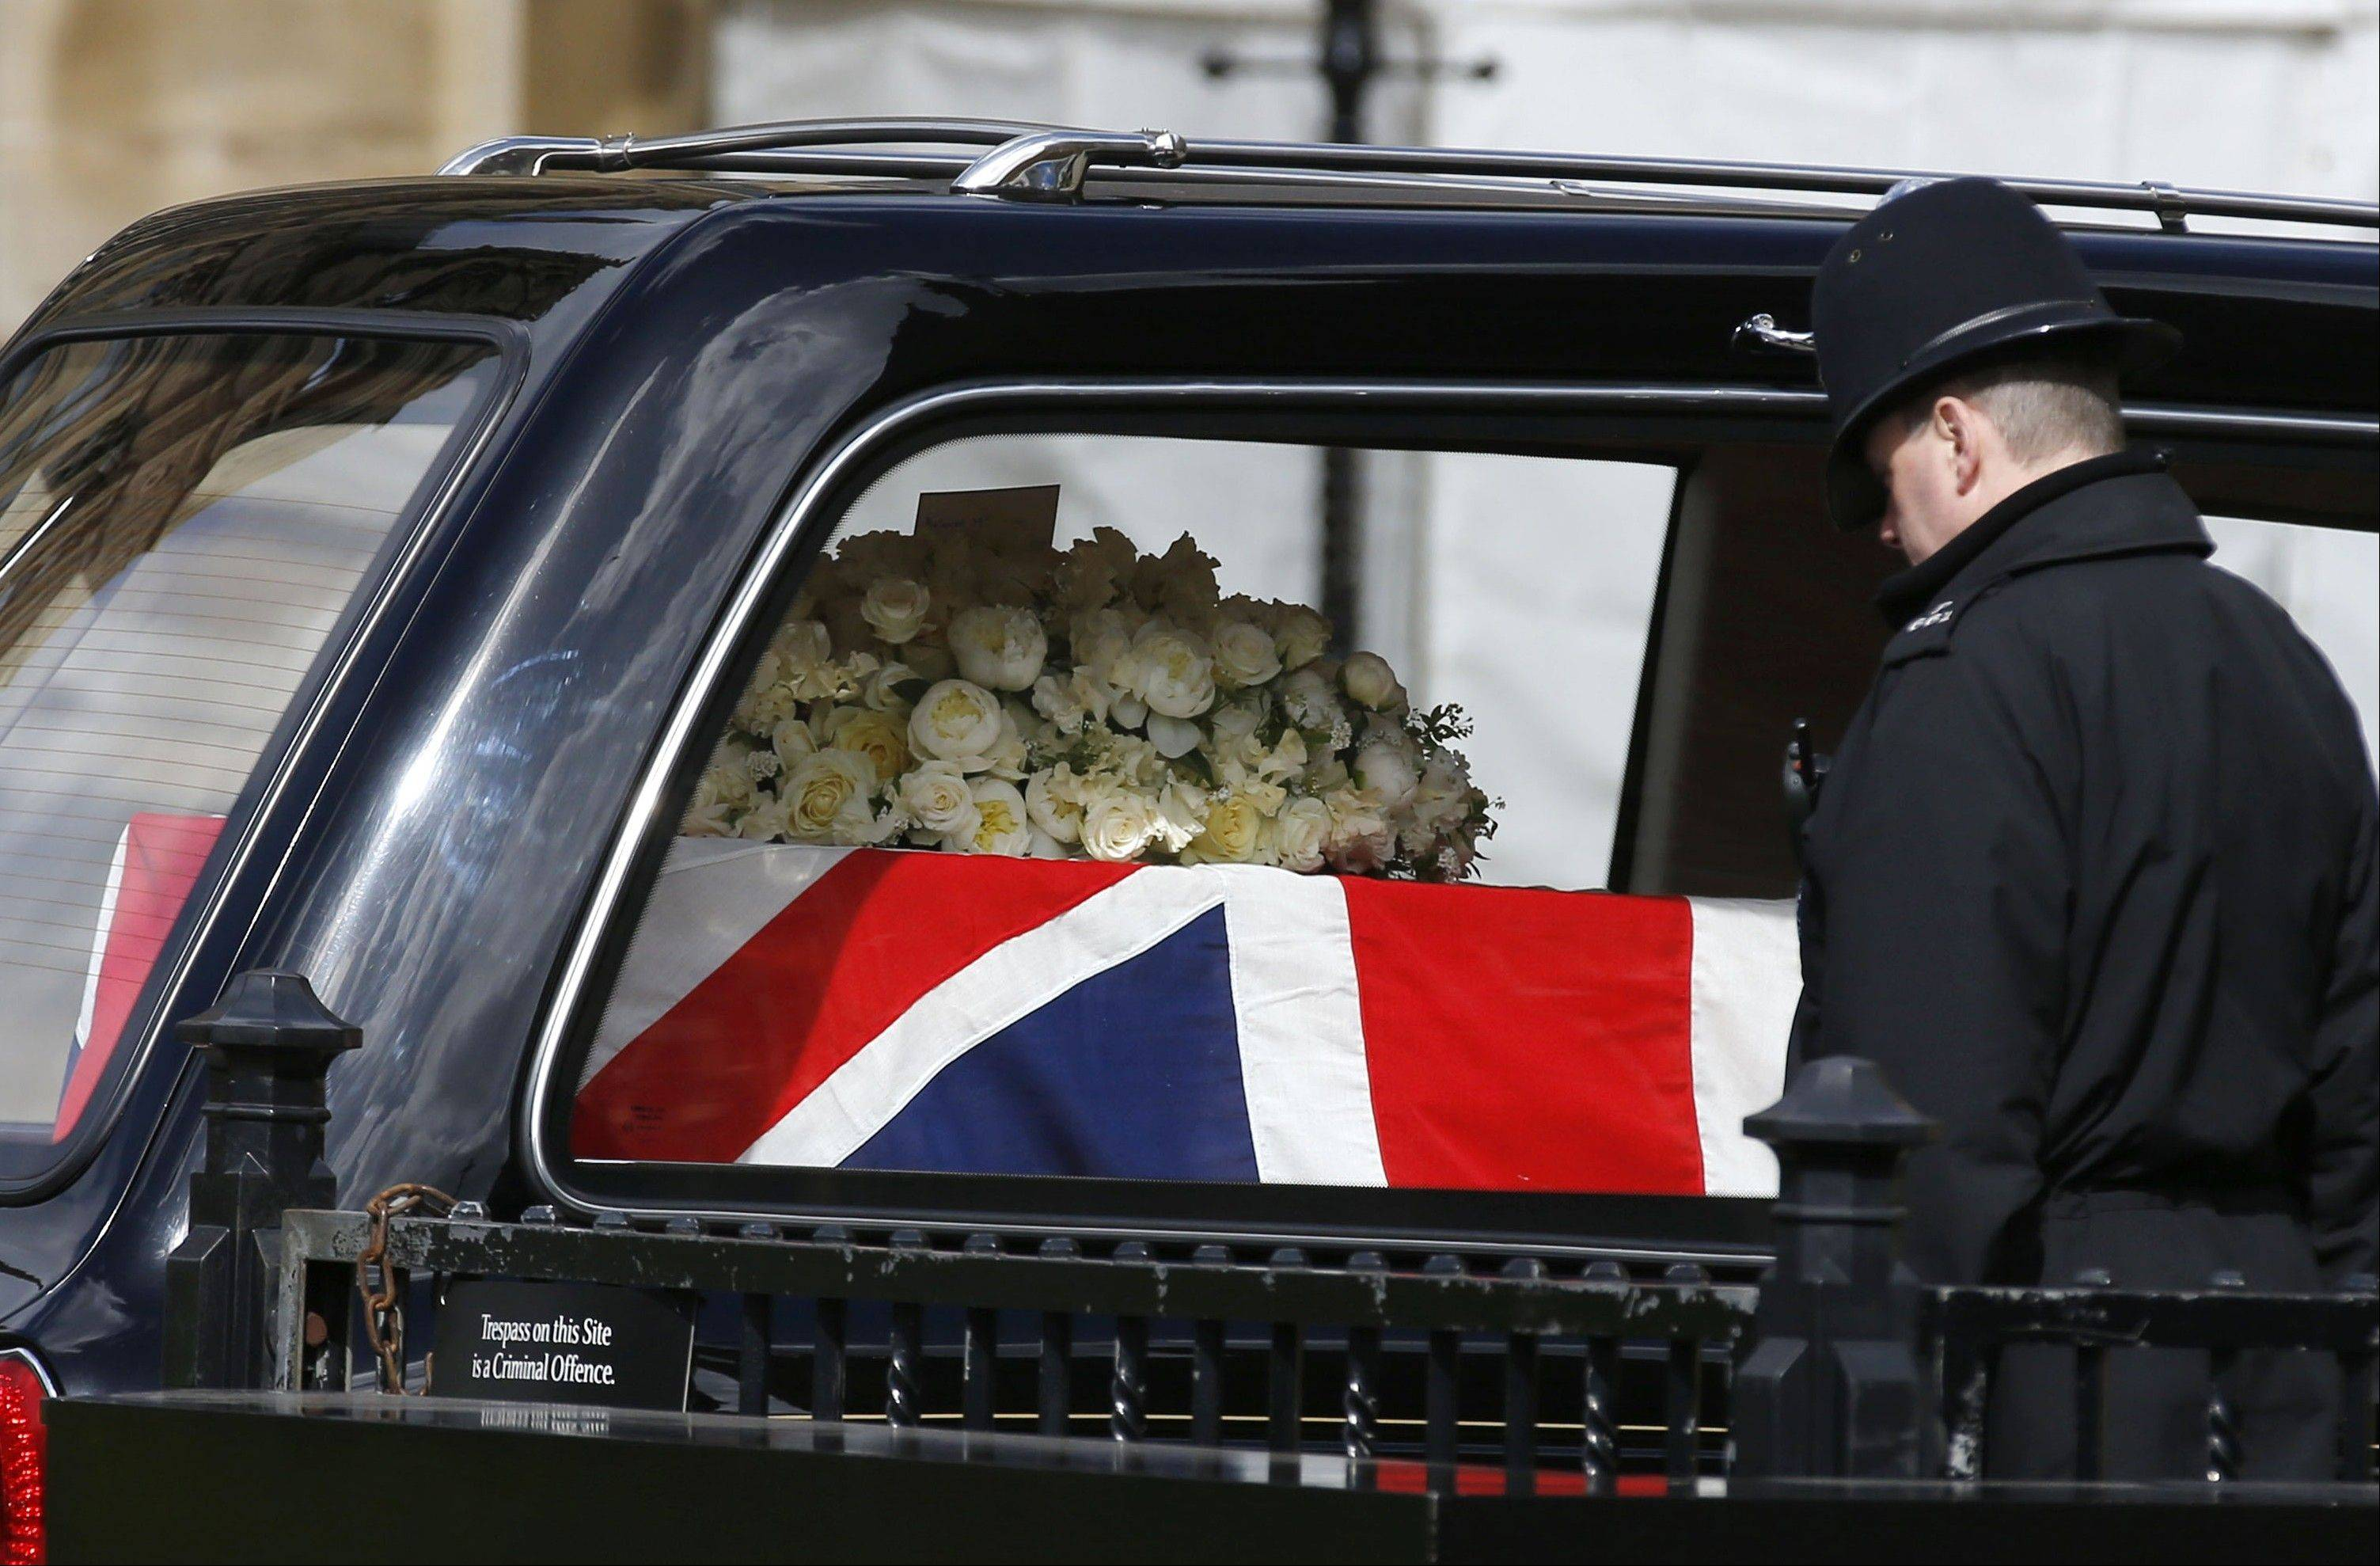 A British police officer bows his head as the Union flag draped coffin holding the body of former British Prime Minister Margaret Thatcher arrives in a hearse at the Houses of Parliament in London to rest overnight before her funeral the next day, Tuesday, April 16, 2013. About 100 colleagues and senior politicians will attend a private service in Parliament's chapel of St. Mary Undercroft later Tuesday. The Iron Lady, who transformed Britain during her 11-year tenure, died April 8, aged 87.